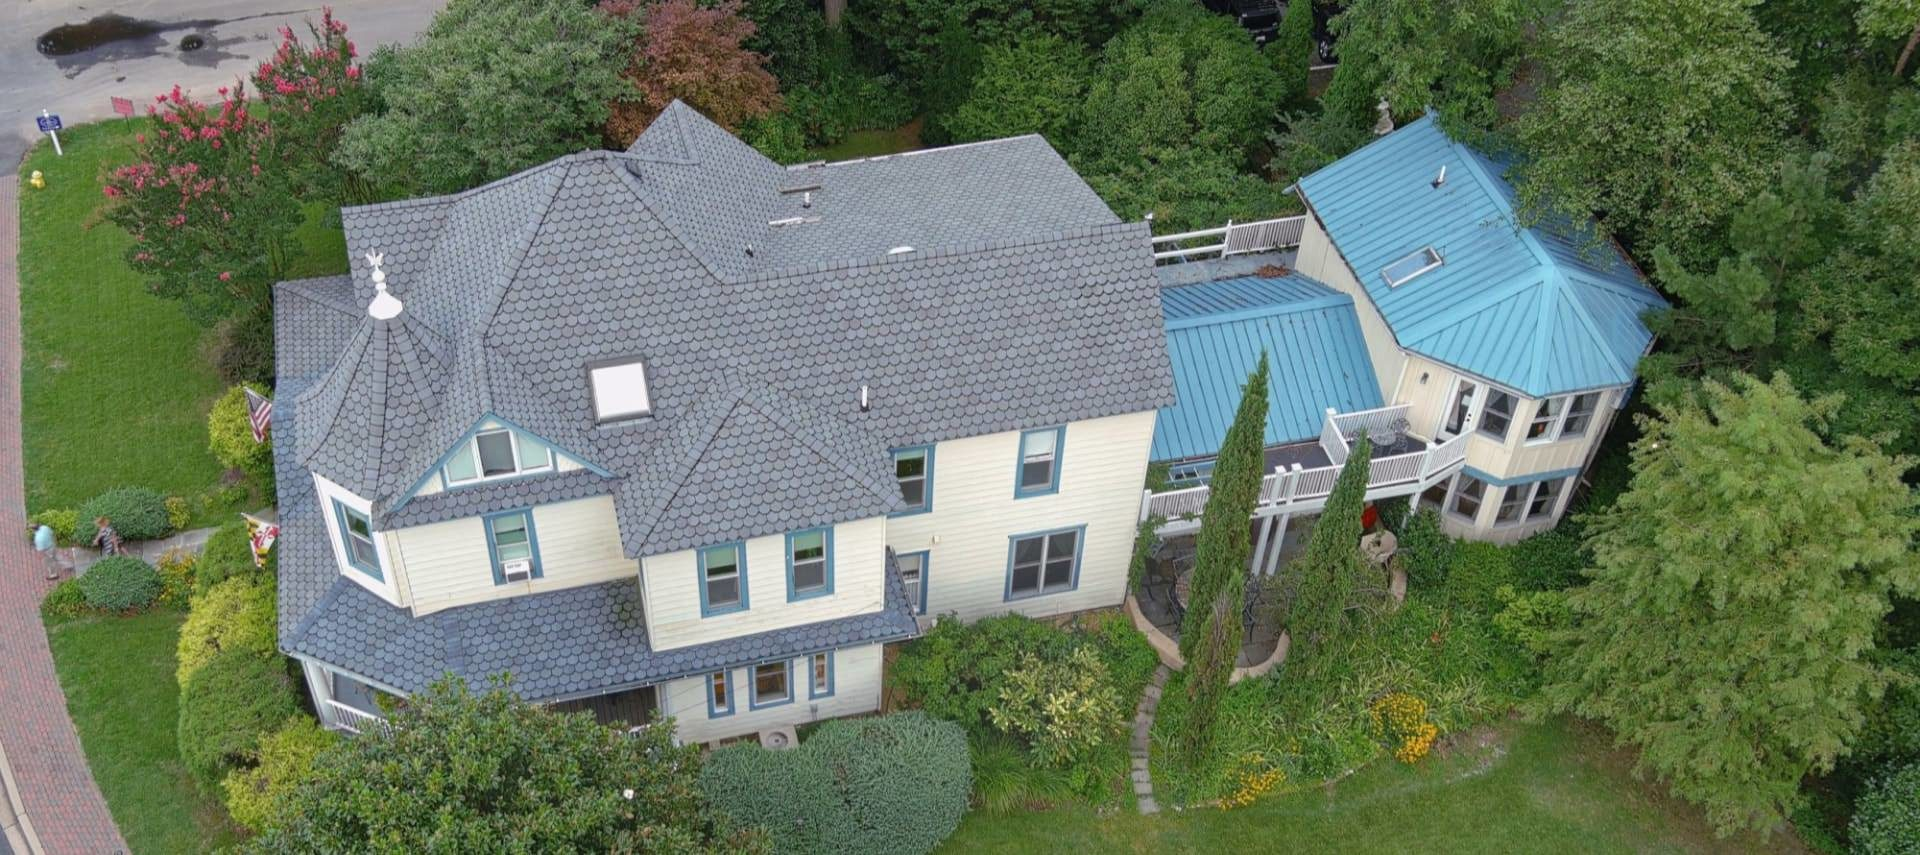 Aerial view of the property surrounded by lush greenery, bushes, and trees